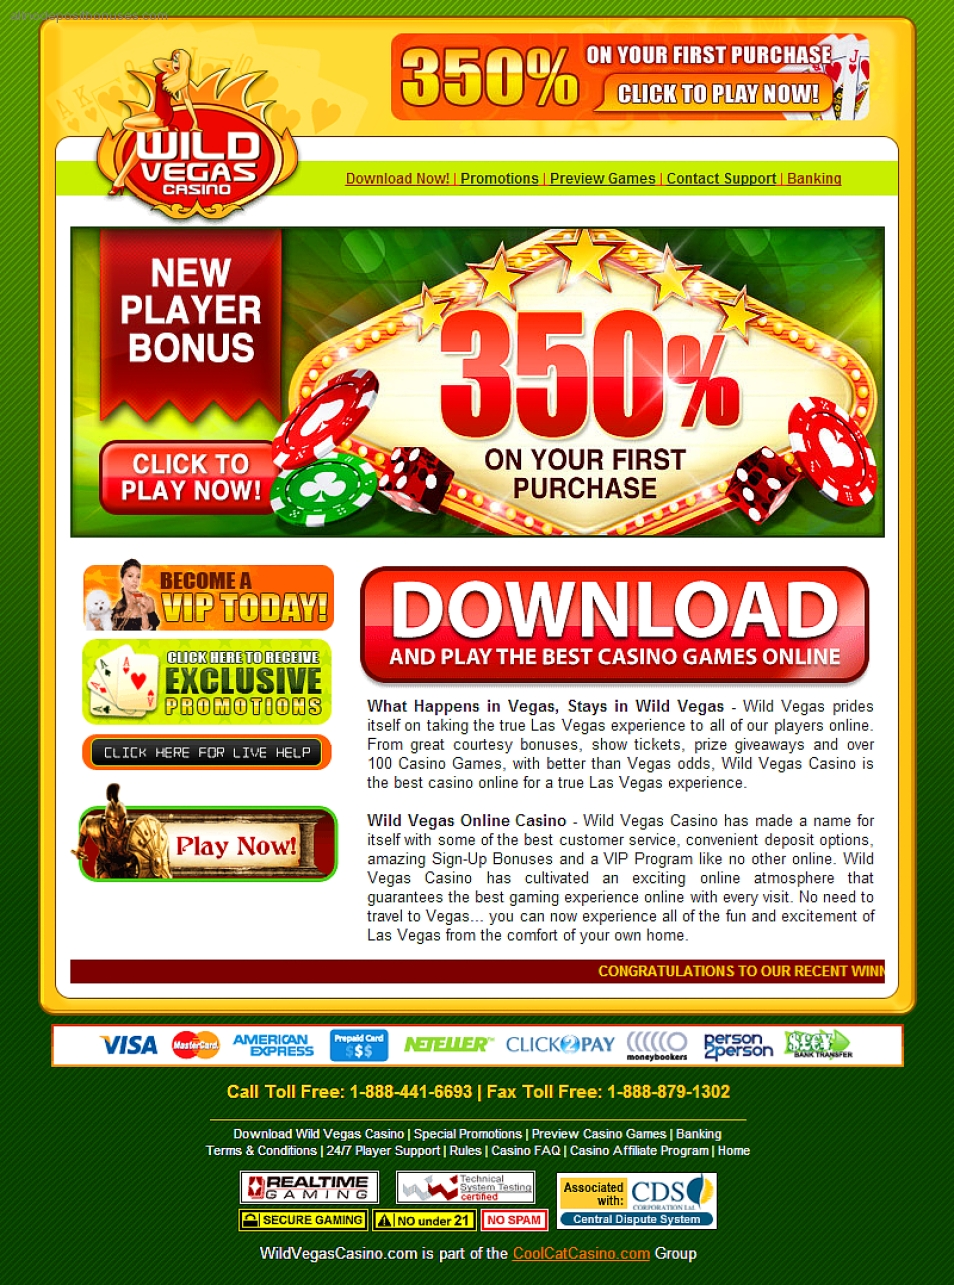 Casinos coupons